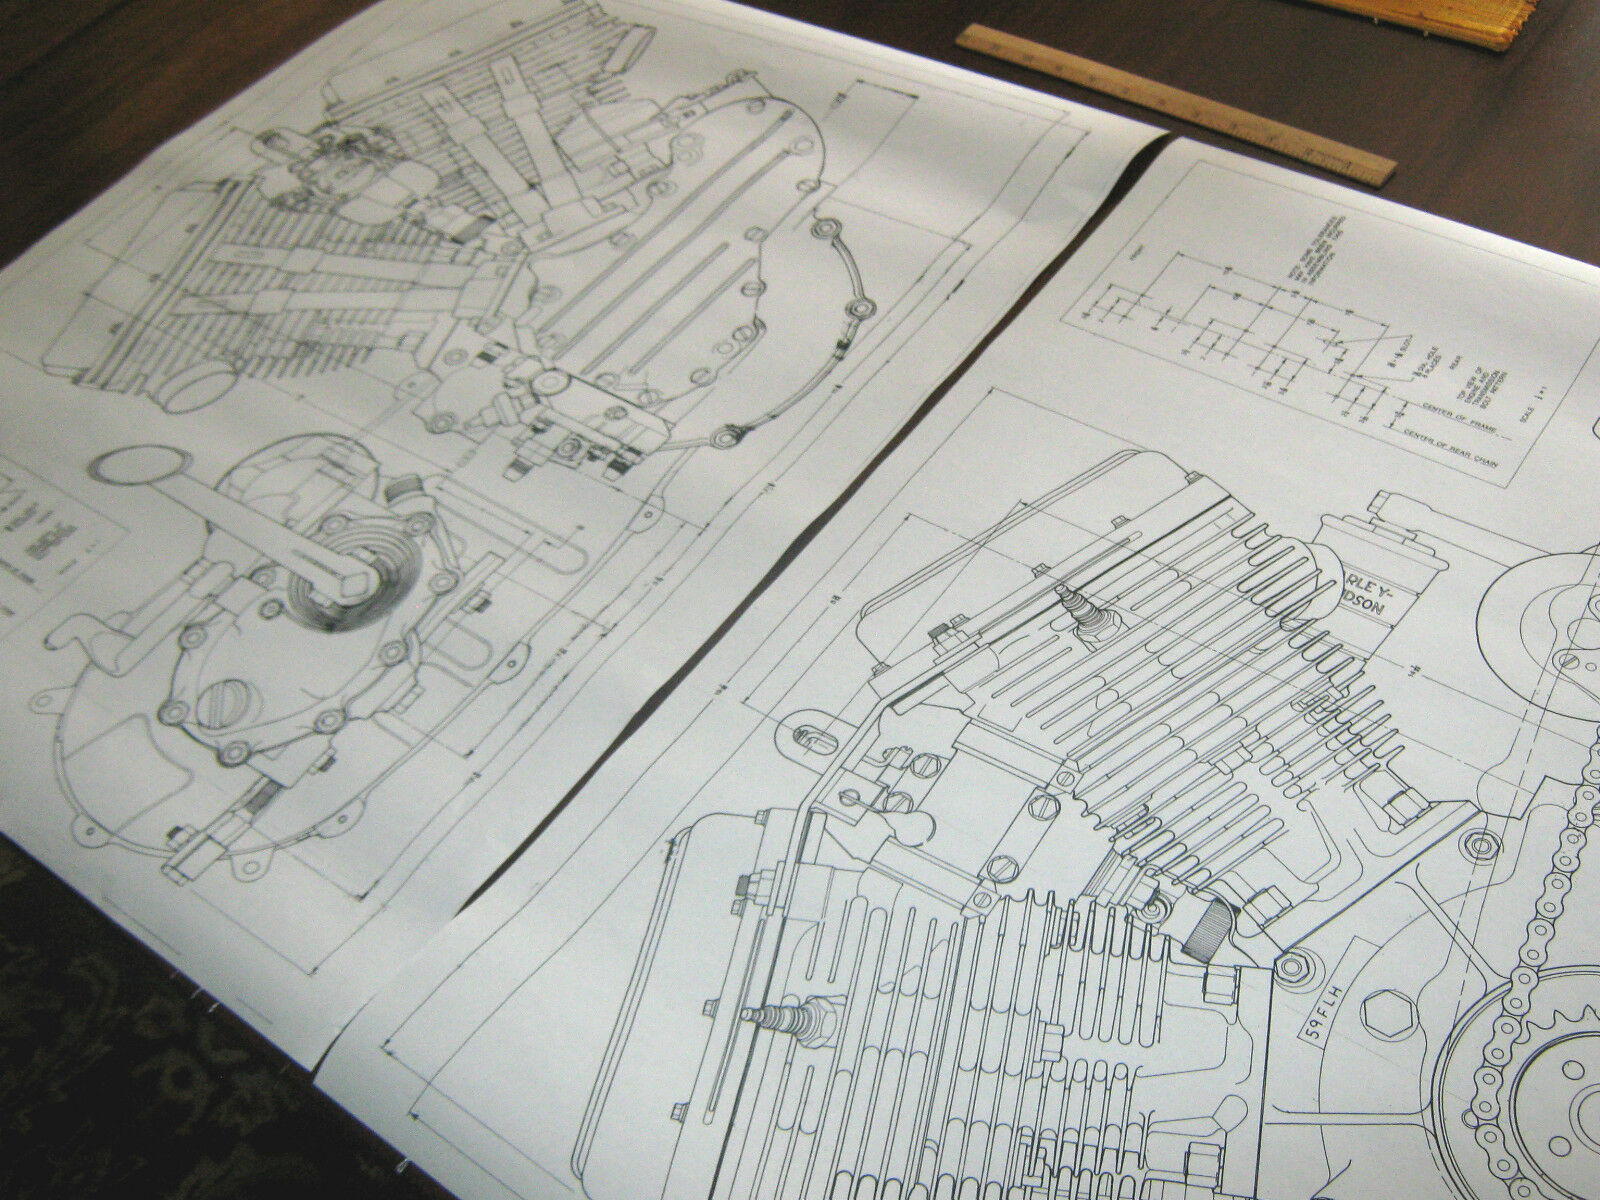 Harley panhead technical drawing set engine blueprint flh for Where to get blueprints printed